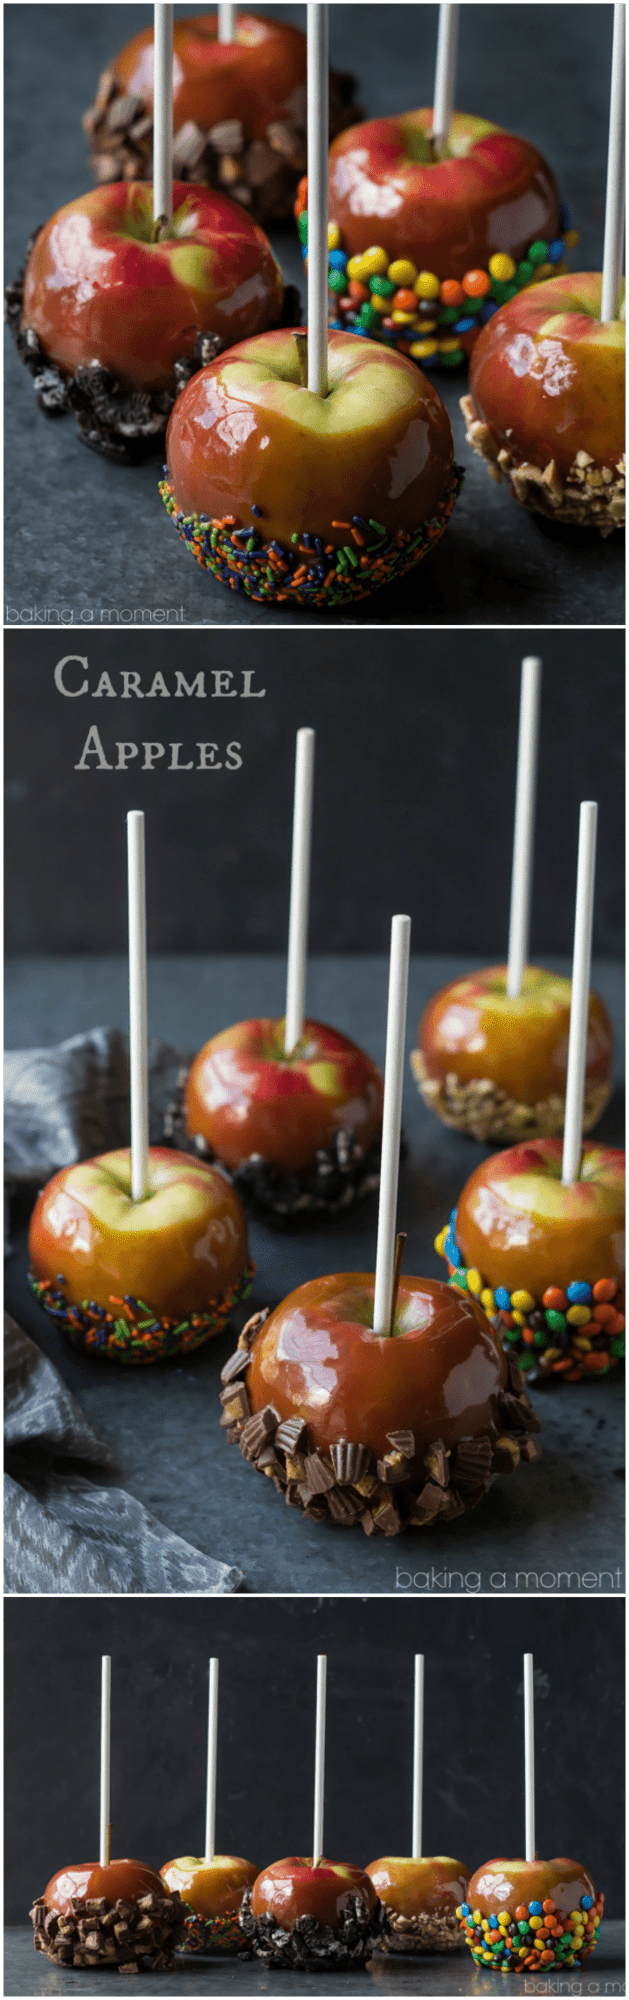 Caramel apples baking a moment for Caramel apple recipes for halloween